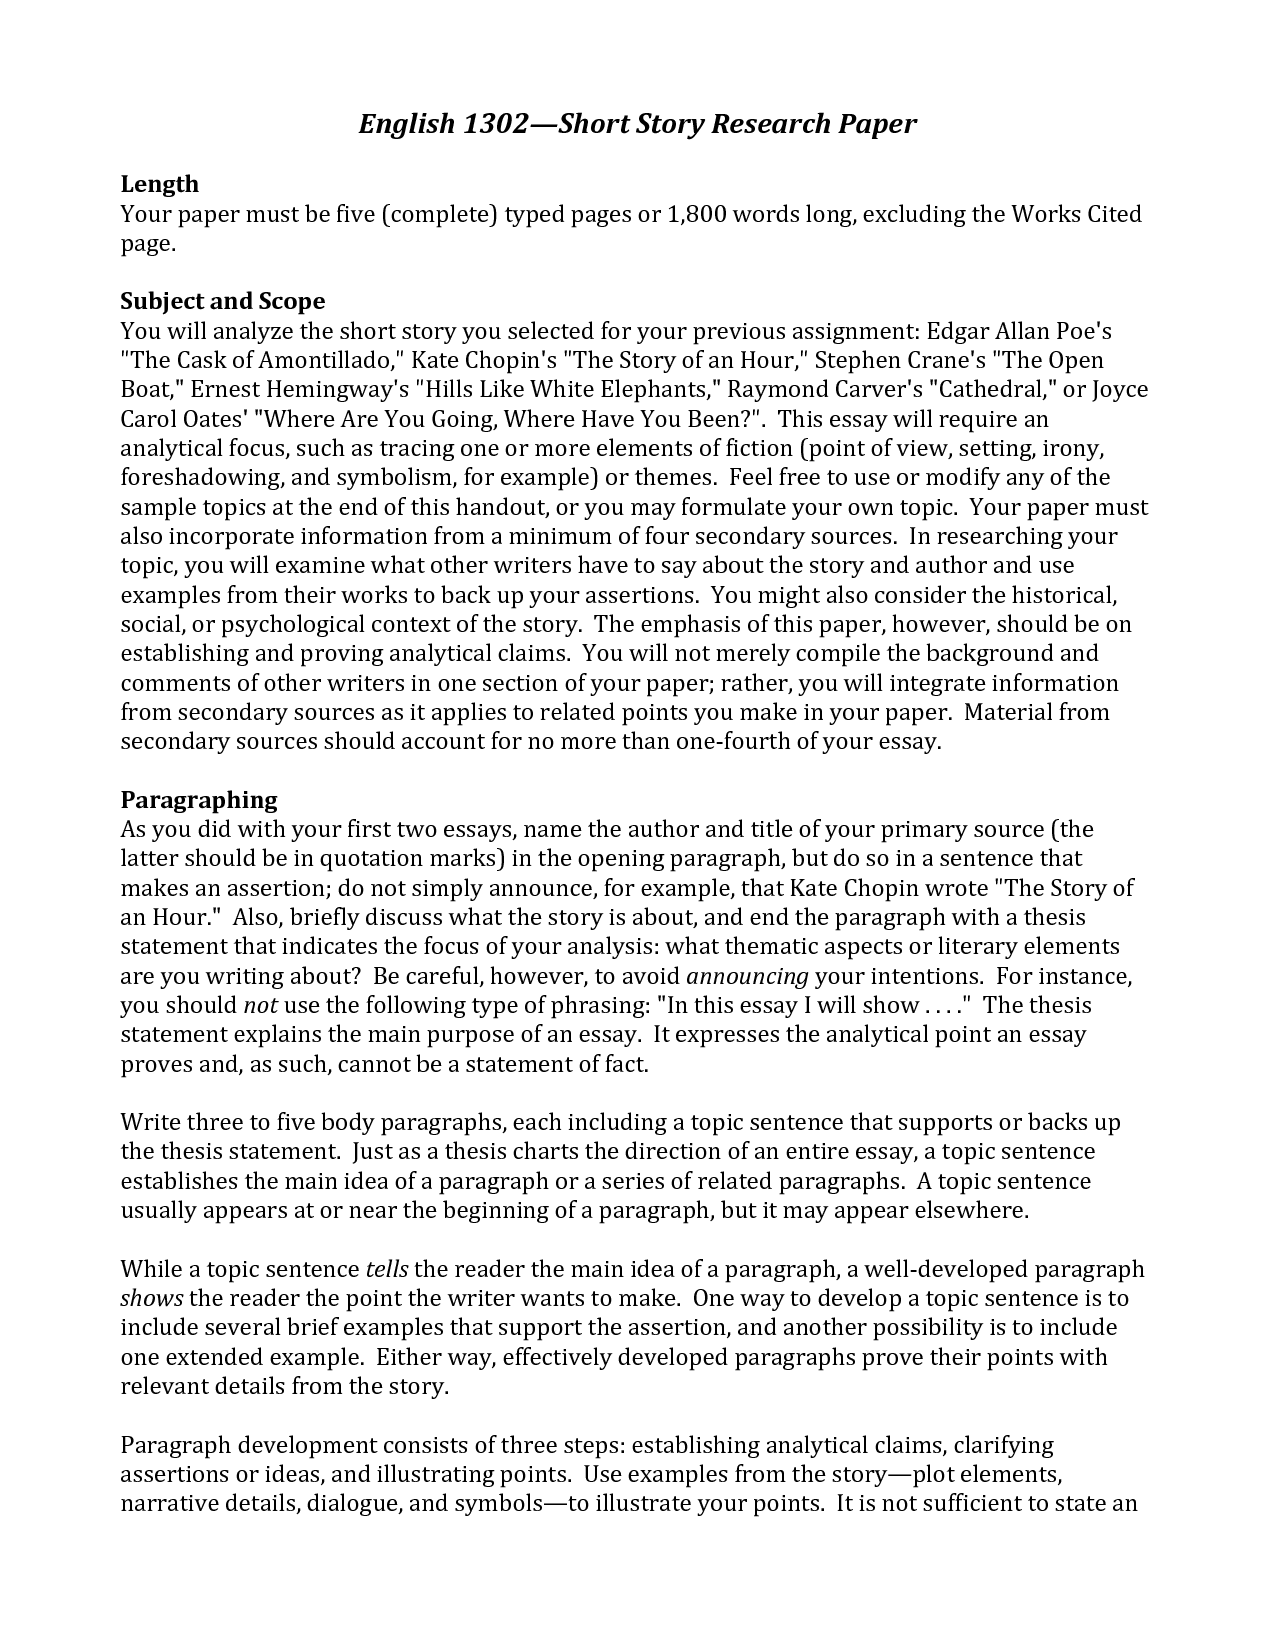 papers papers research research write write Project: writing a research paper from university of california, irvine welcome to the capstone project for the academic english: writing specialization this project lets you apply.